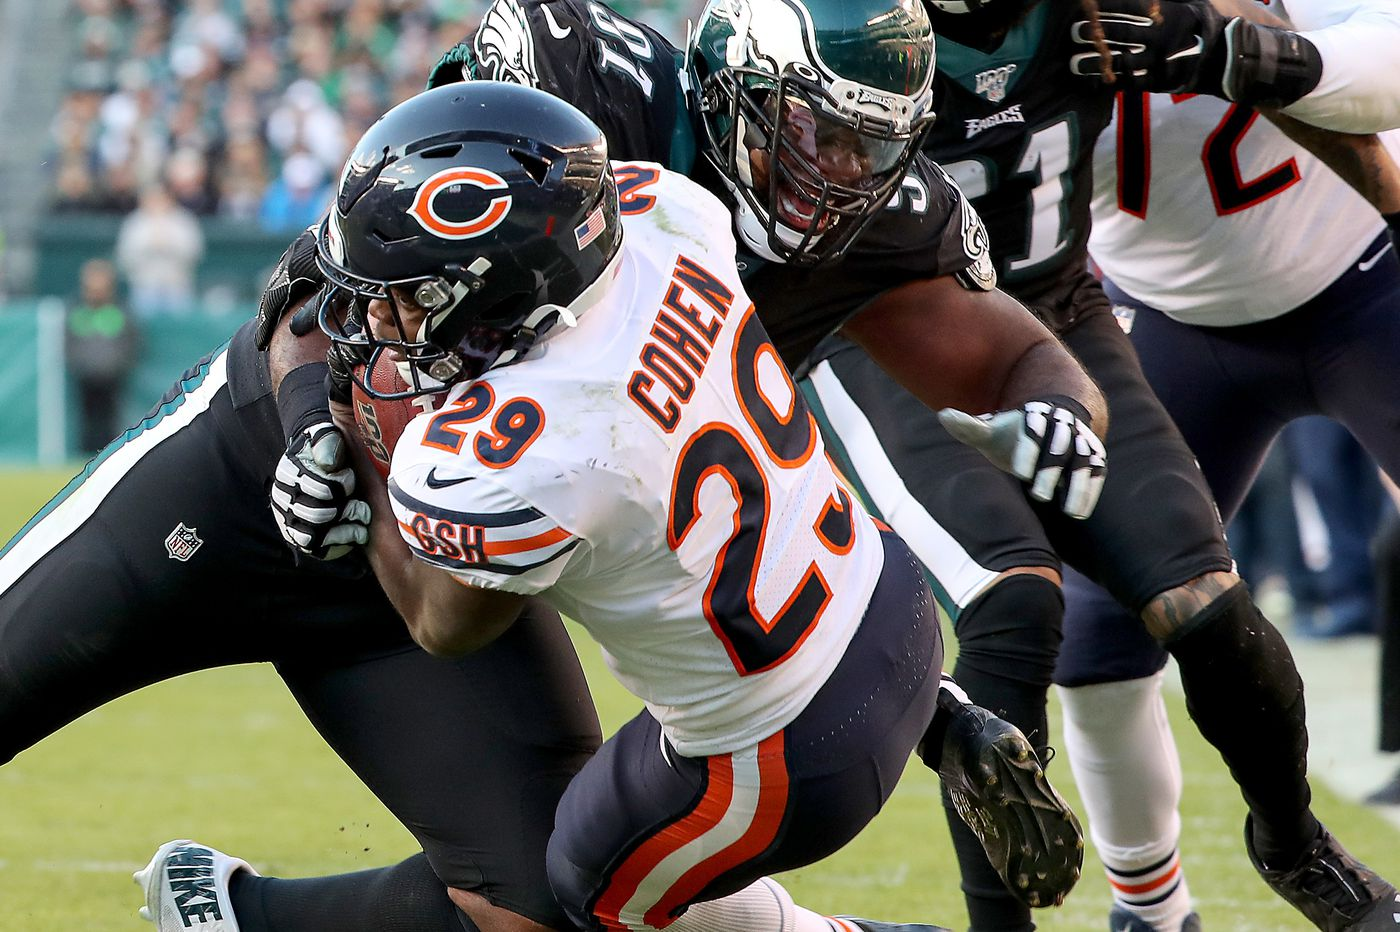 Fletcher Cox, Eagles' best player, leads way vs. Bears in Birds' second consecutive win | Marcus Hayes